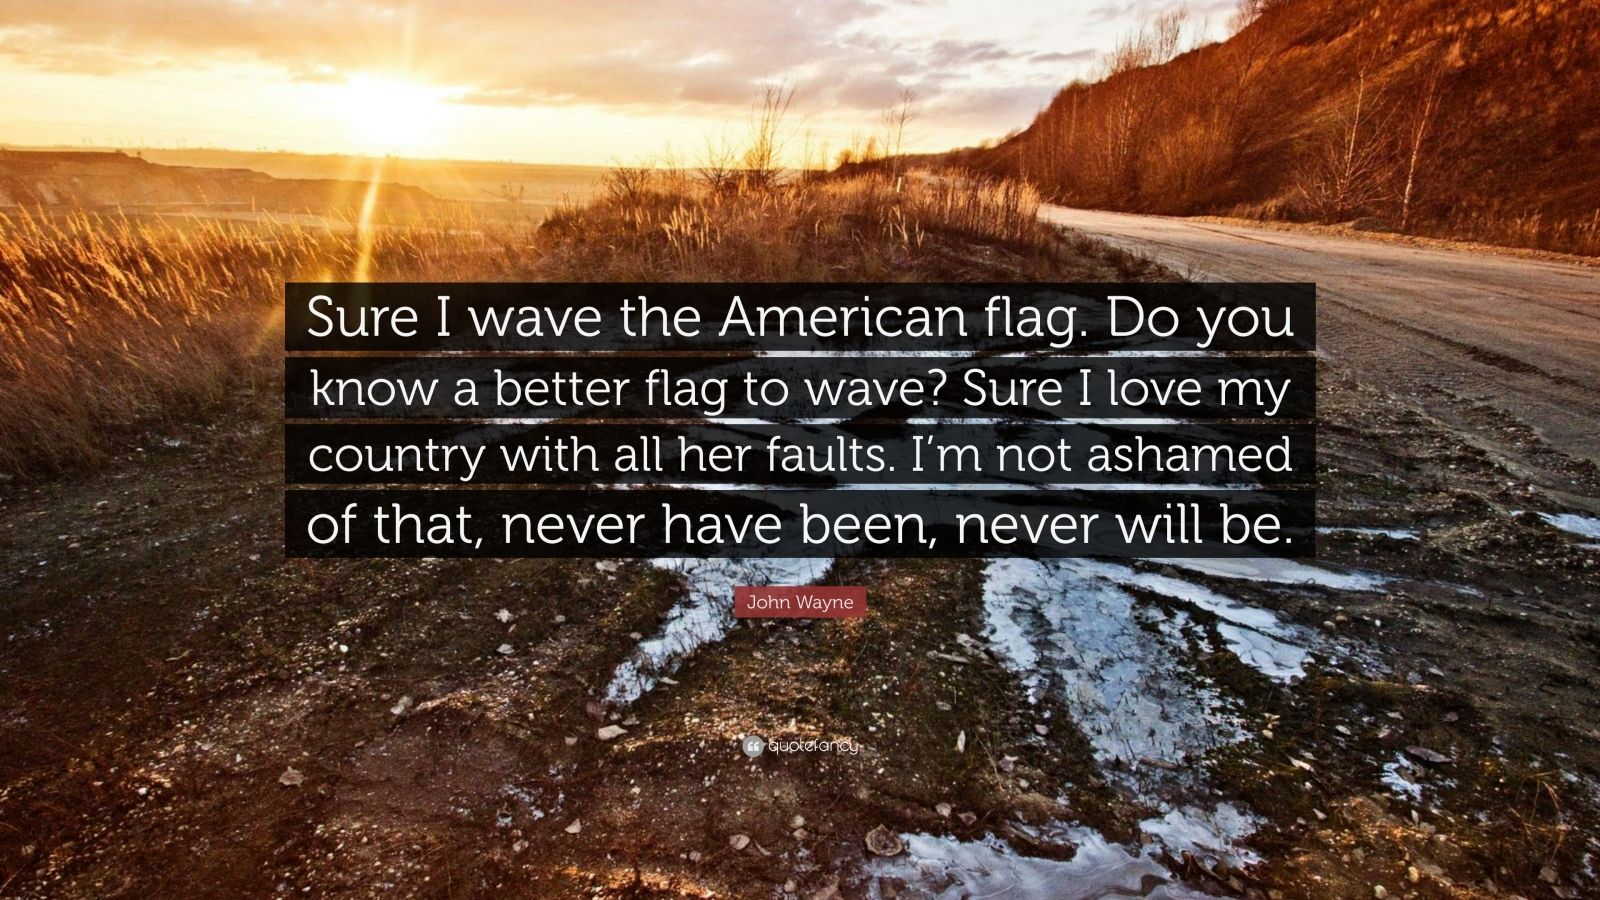 """John Wayne Quote: """"Sure I wave the American flag. Do you know a better flag to wave? Sure I love my country with all her faults. I'm not ashamed of that, never have been, never will be."""""""